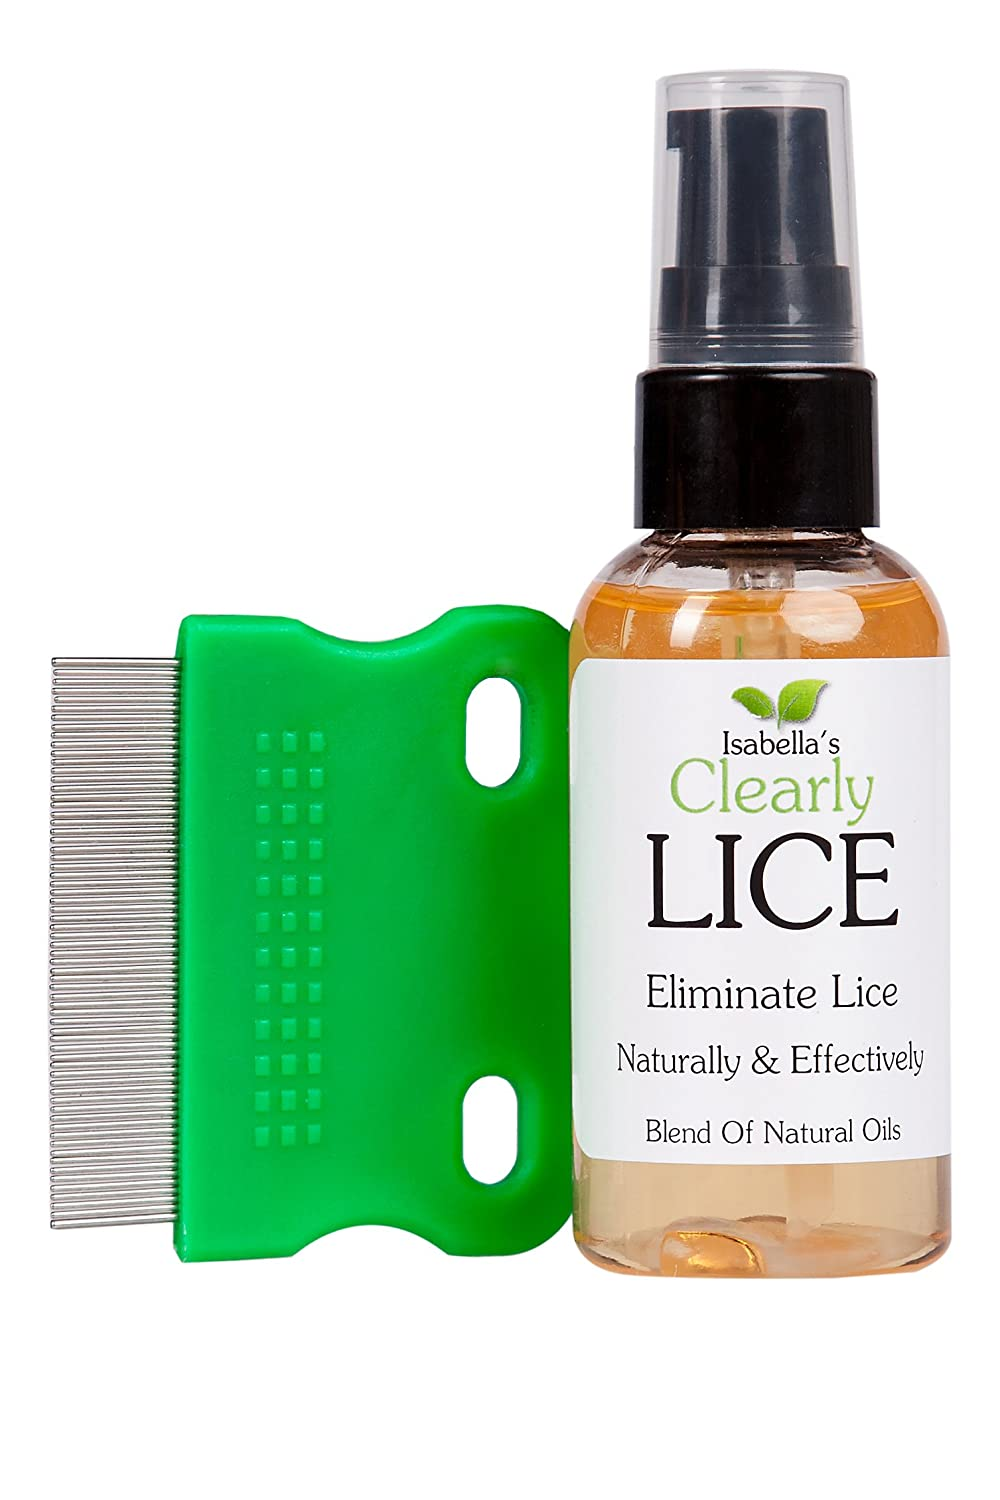 Isabella's Clearly LICE, Powerful Treatment of Natural Oils Proven to Eliminate Lice and Nits. No Toxics or Harsh Chemicals. FREE Lice Comb. For Kids & Adults. Neem, Rosemary, Cedarwood. 2 Oz. Isabella's Clearly LICE 11006